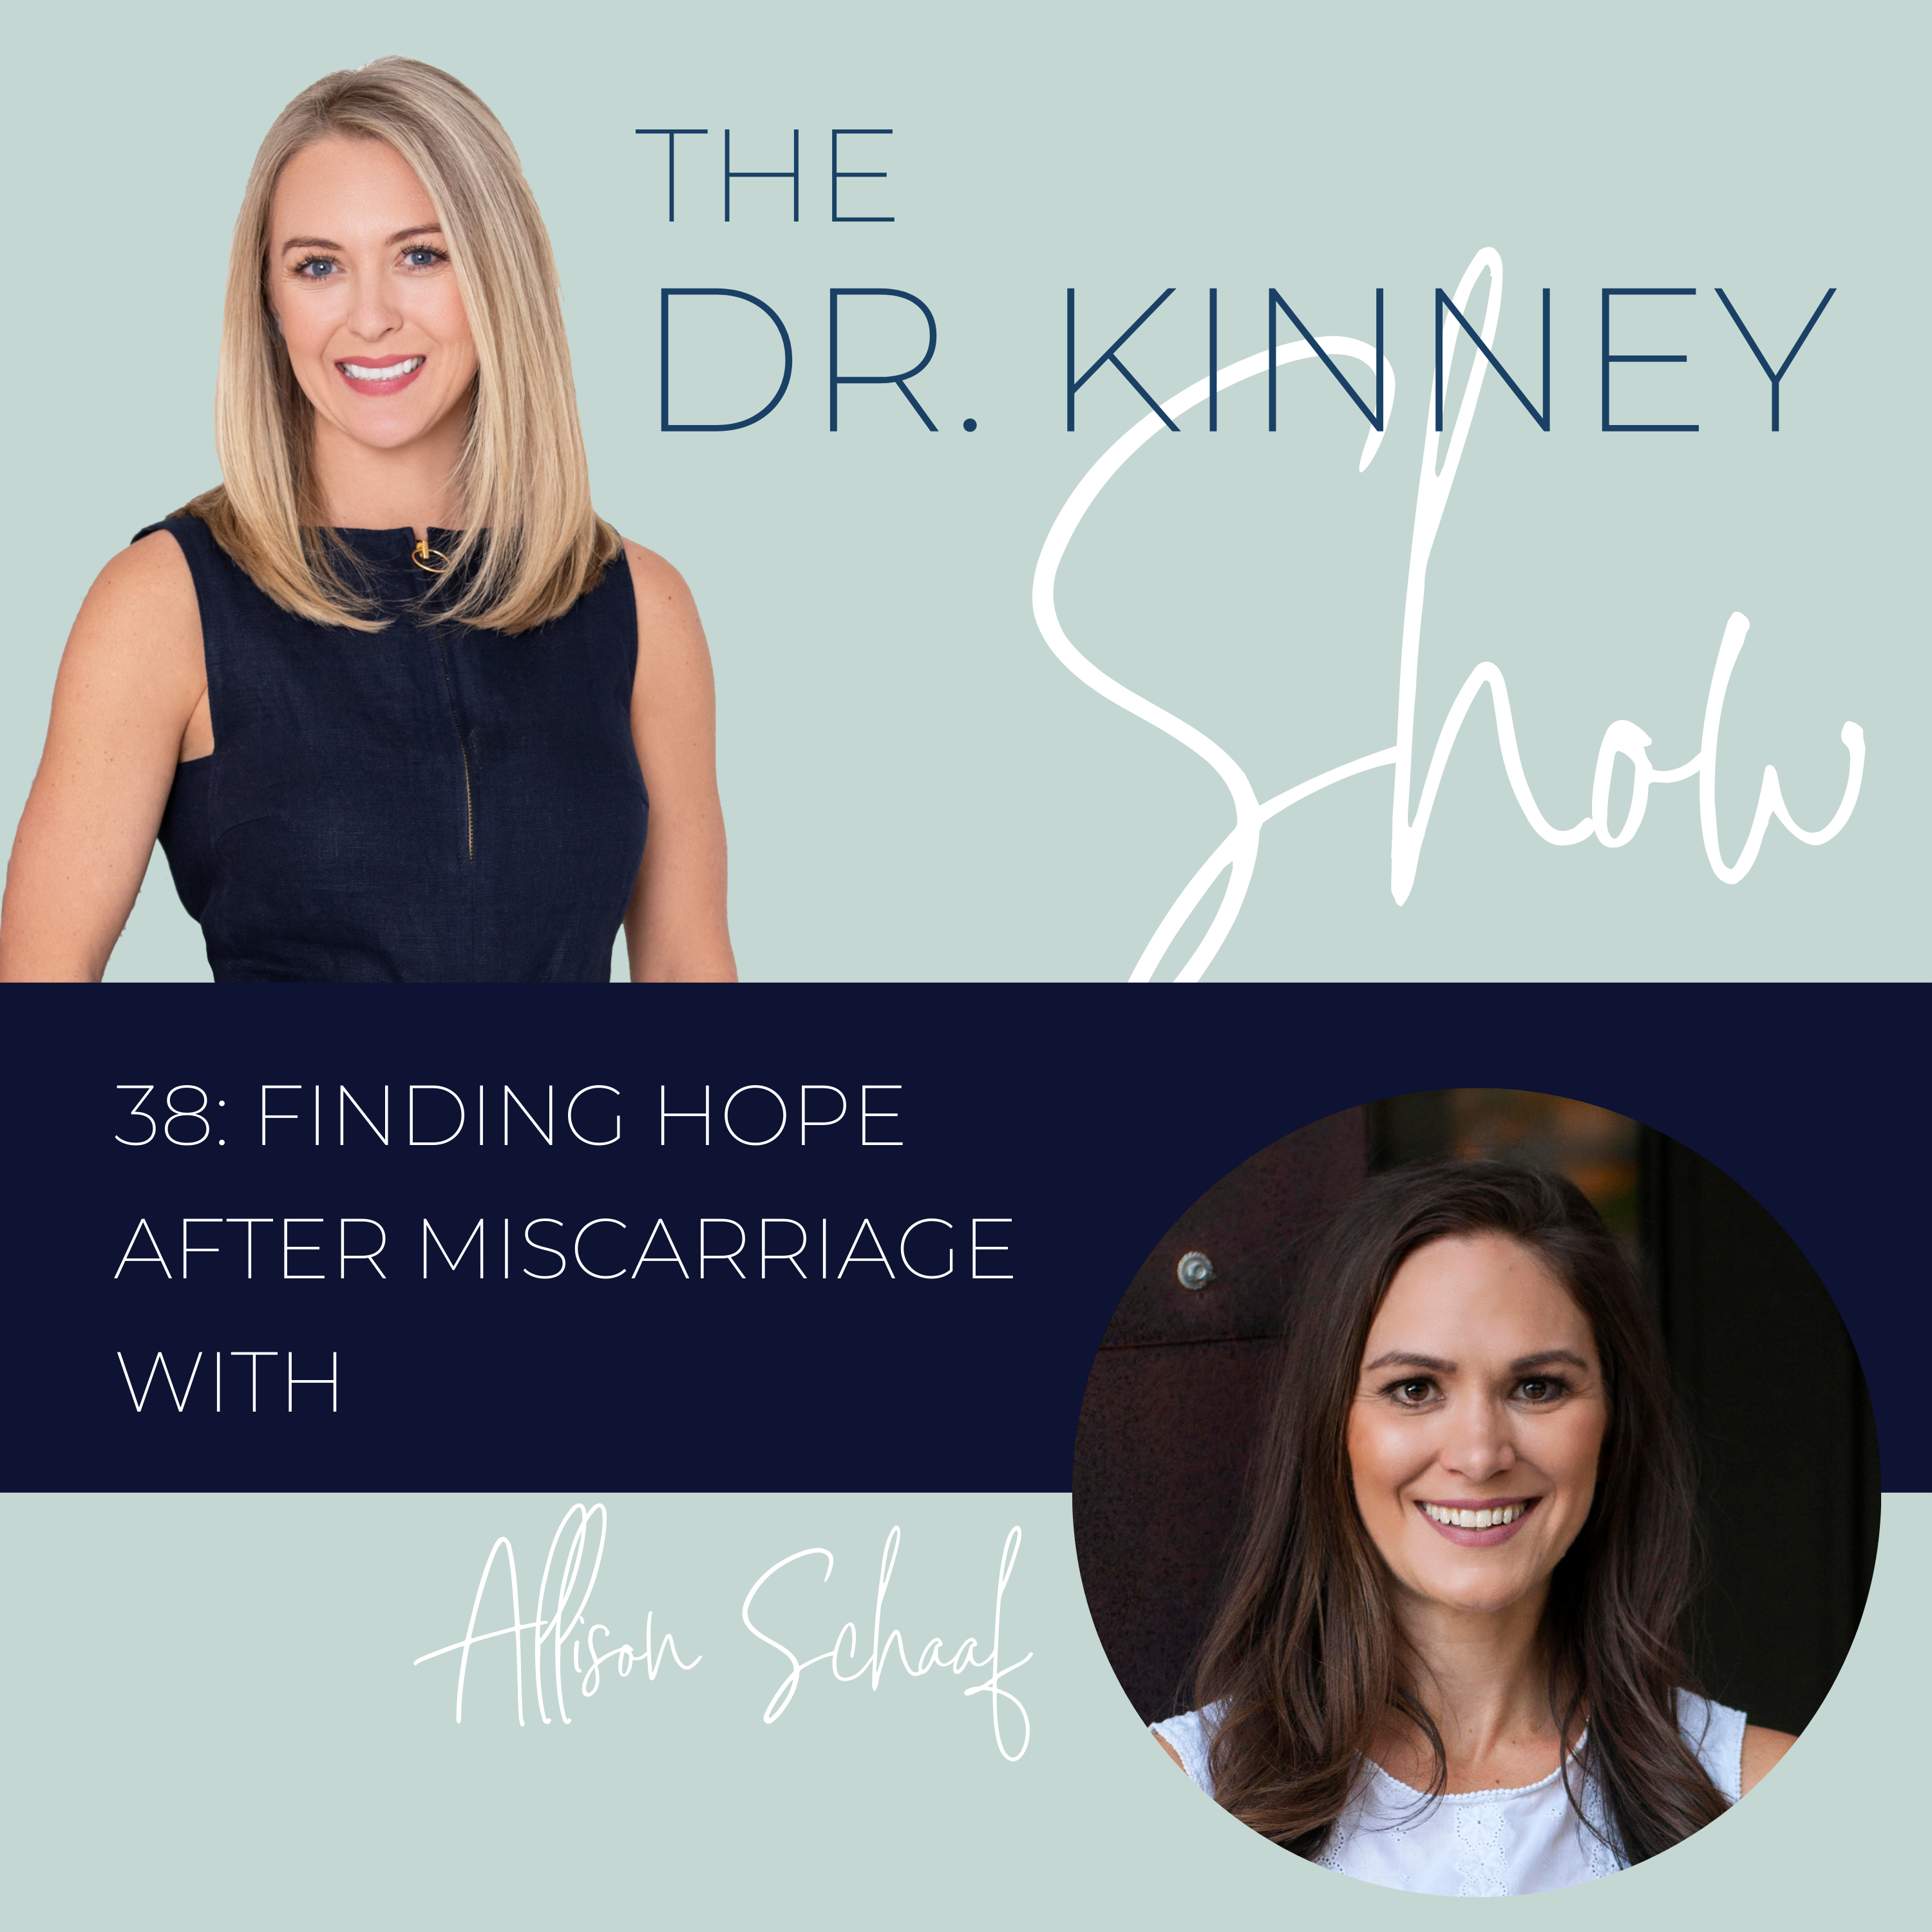 Finding Hope After Miscarriage